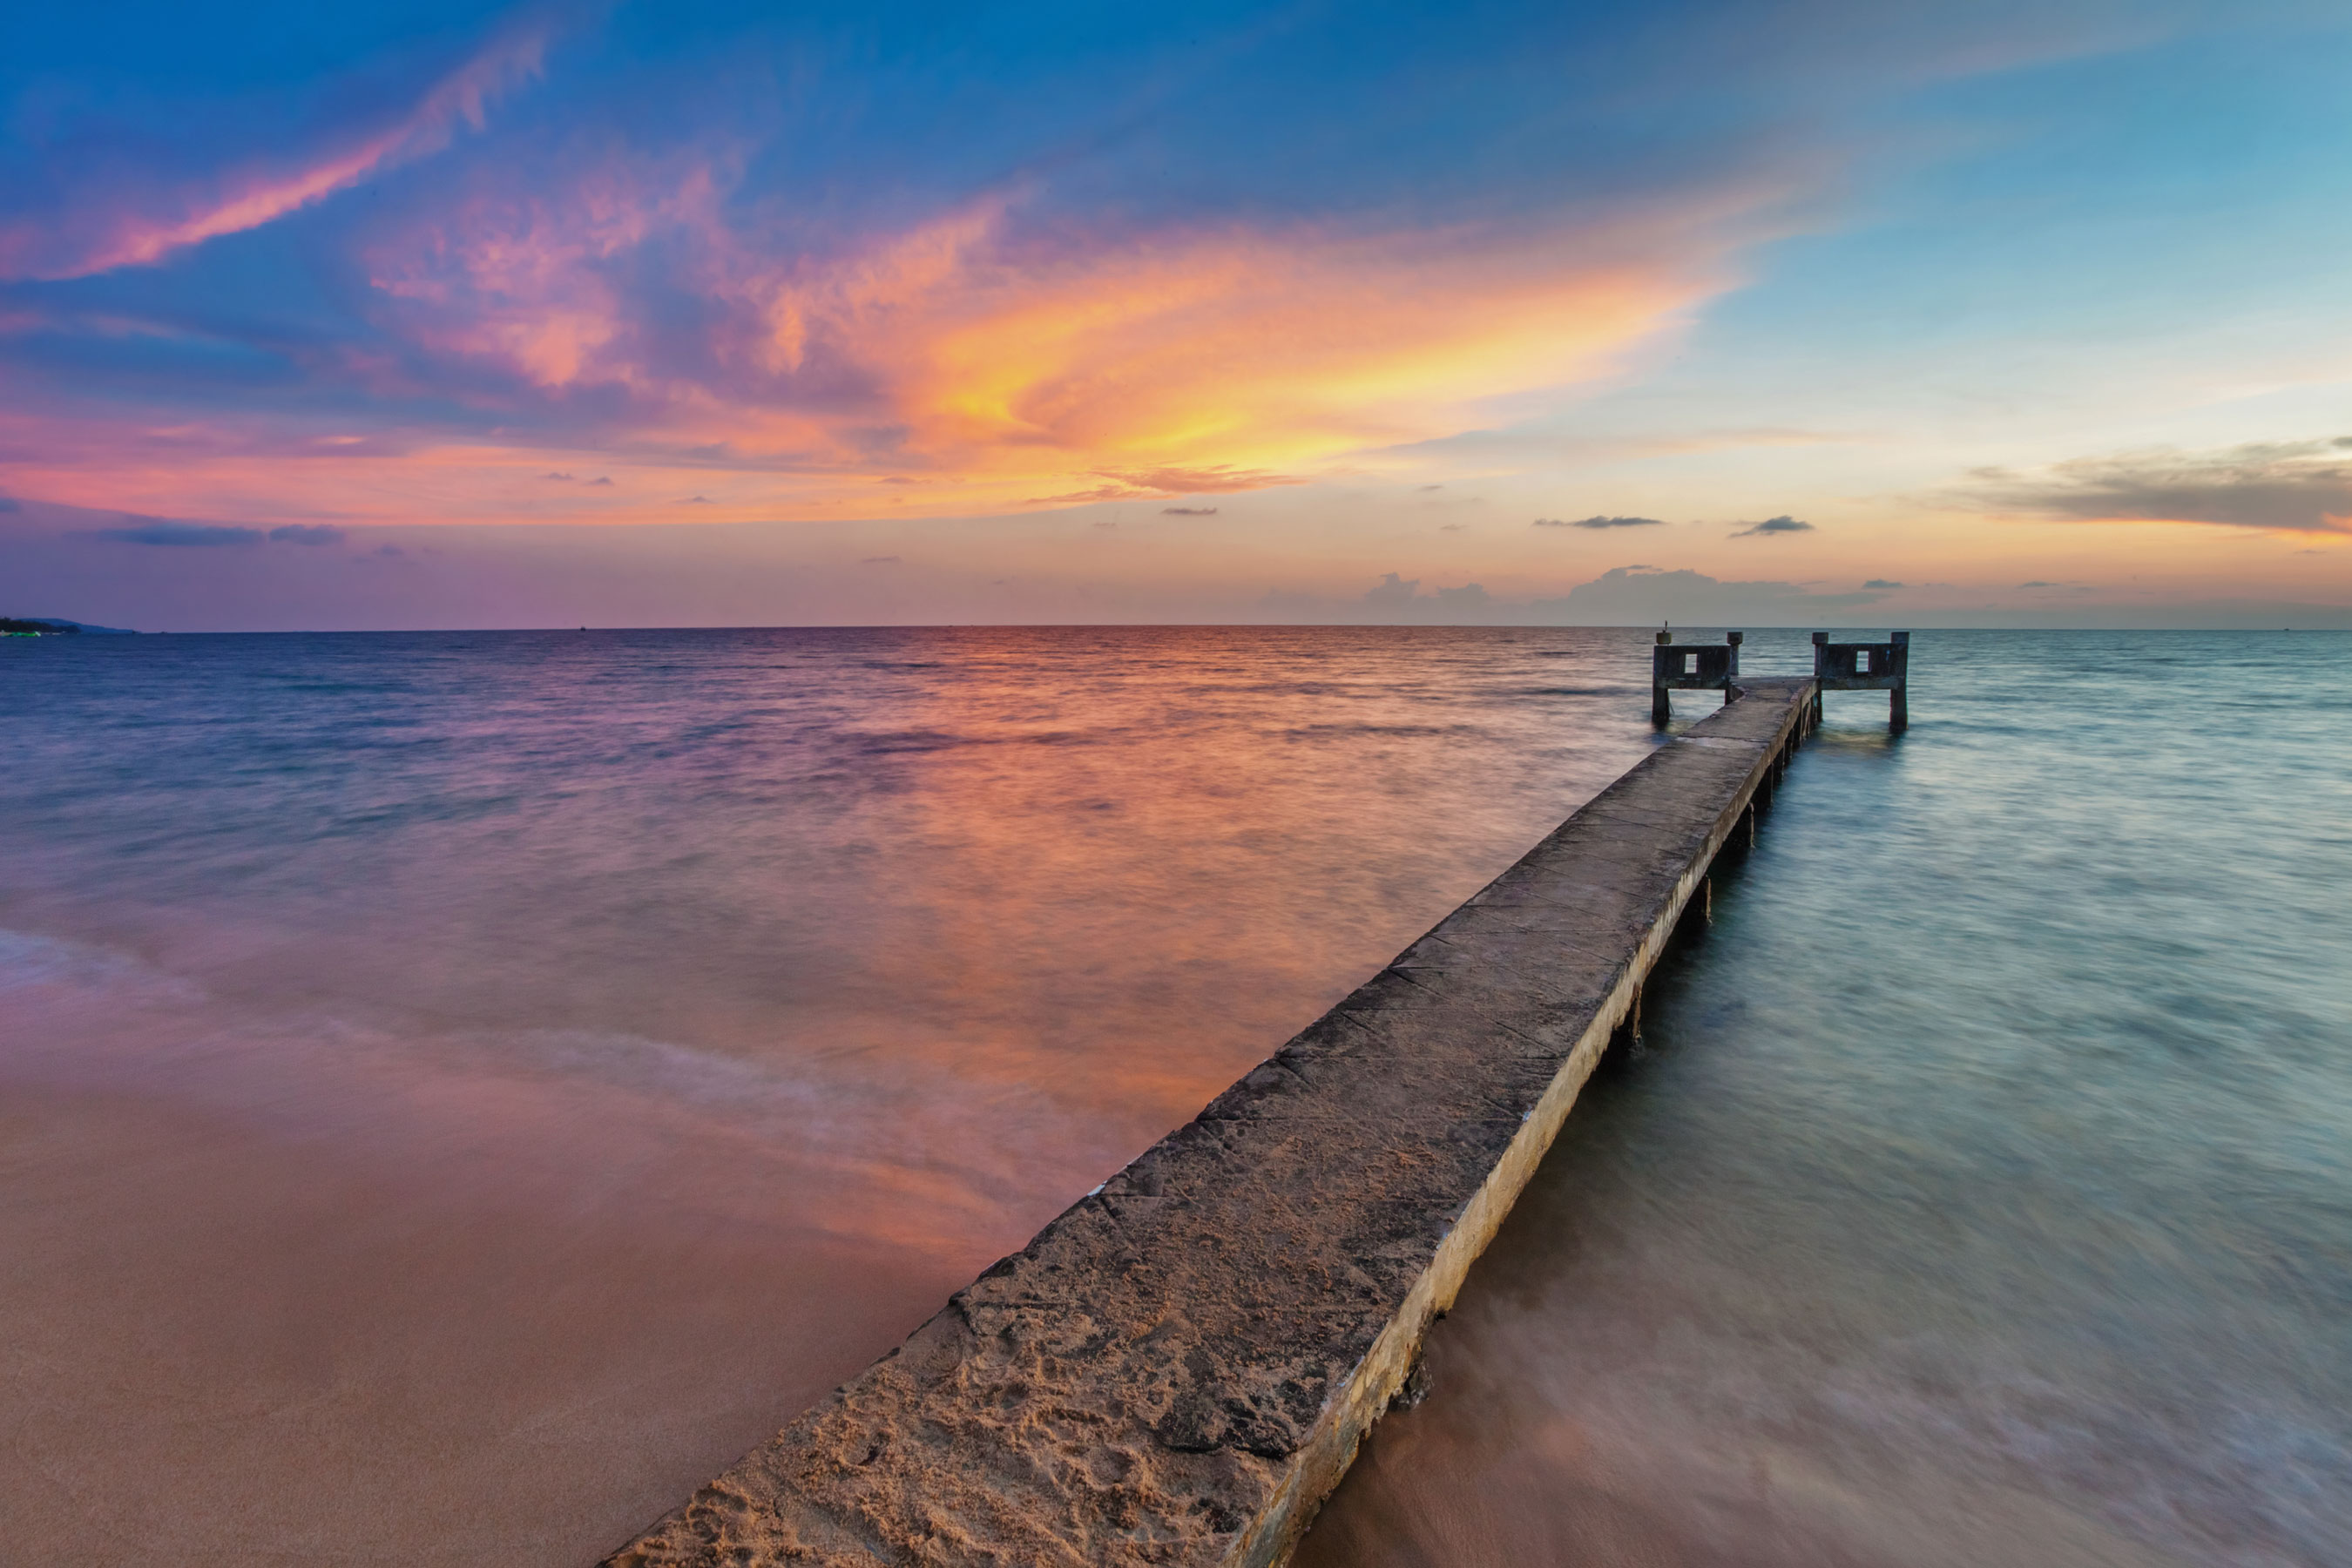 Sunset-over-the-sea-at-Phu-Quoc-island-in-Vietnam_tropicallife